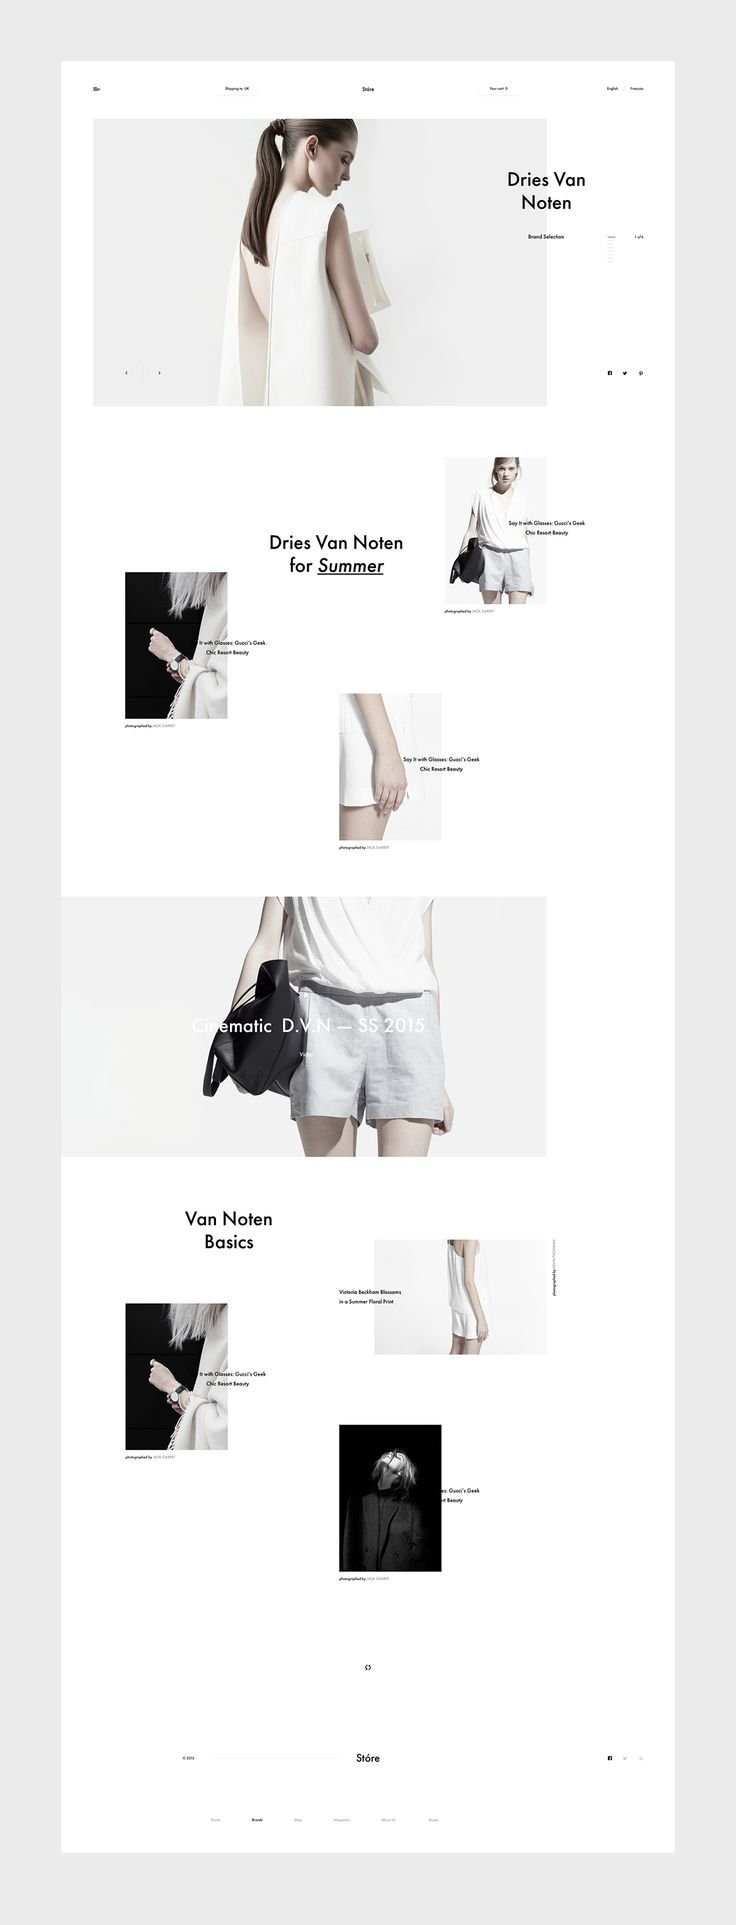 Minimalistic Web #Design to Inspire via http://83oranges.com?utm_content=buffer02f14&utm_medium=social&utm_source=pinterest.com&utm_campaign=buffer https://www.pinterest.com/pin/304978205993814044/?utm_content=buffer514e4&utm_medium=social&utm_source=pinterest.com&utm_campaign=buffer #repin